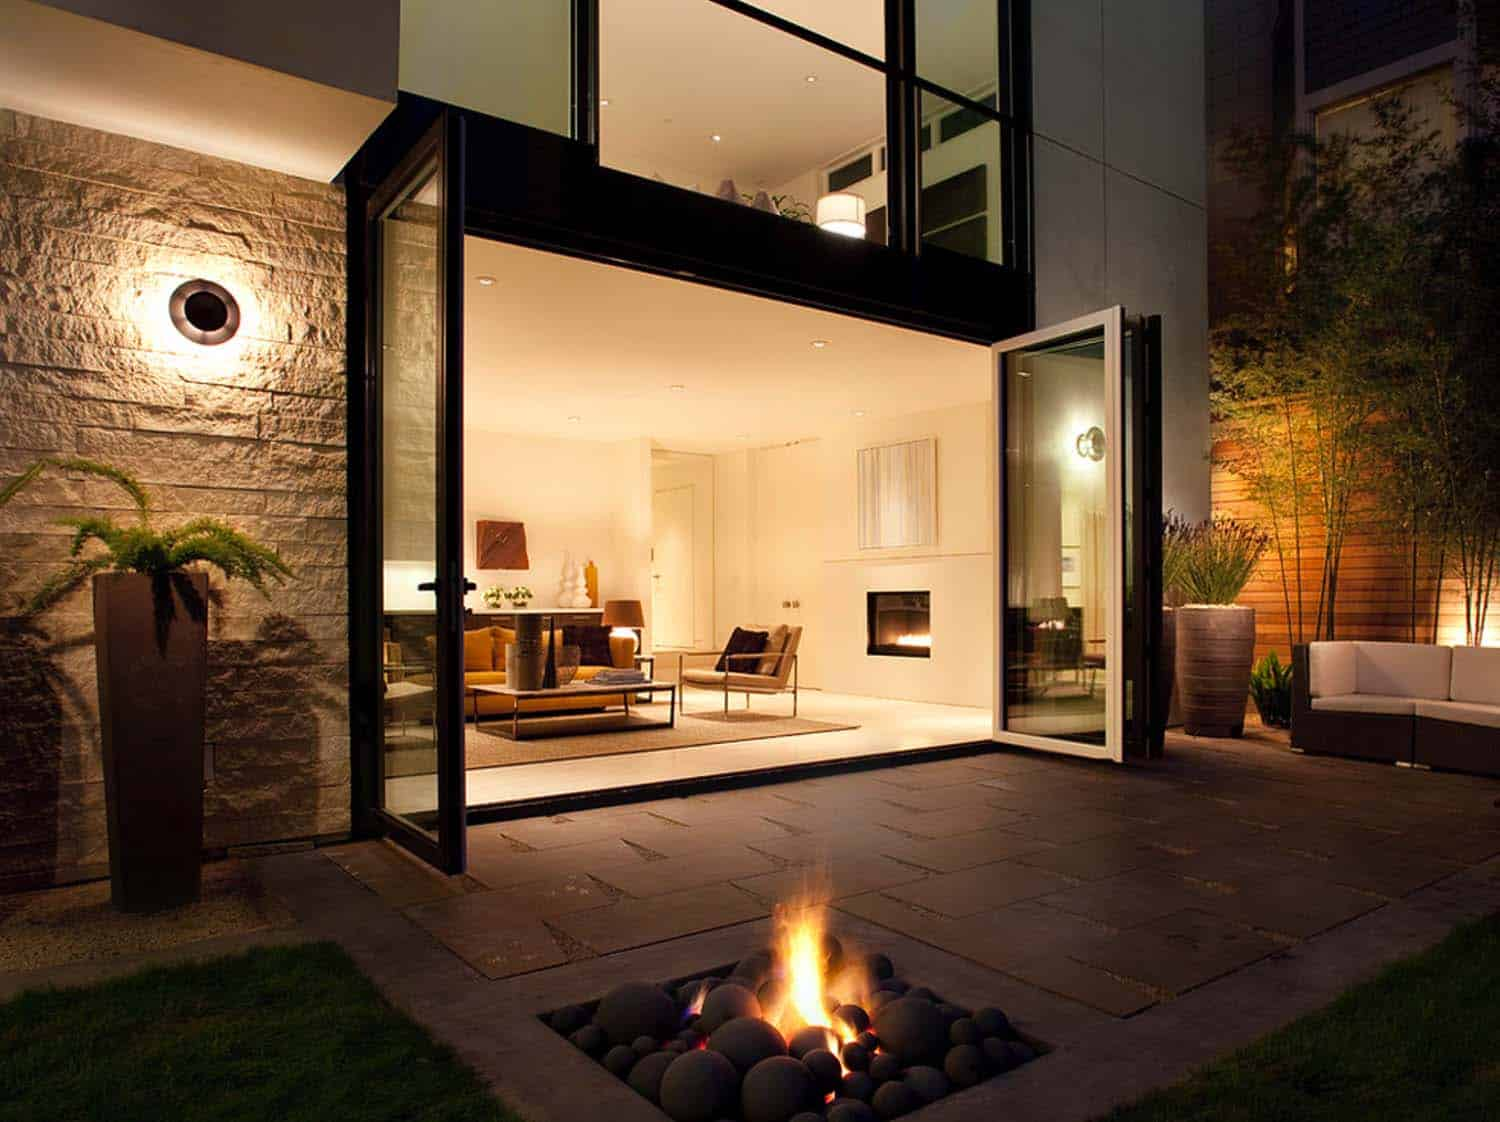 Modern Architecture LEED Platinum Home-36-1 Kindesign